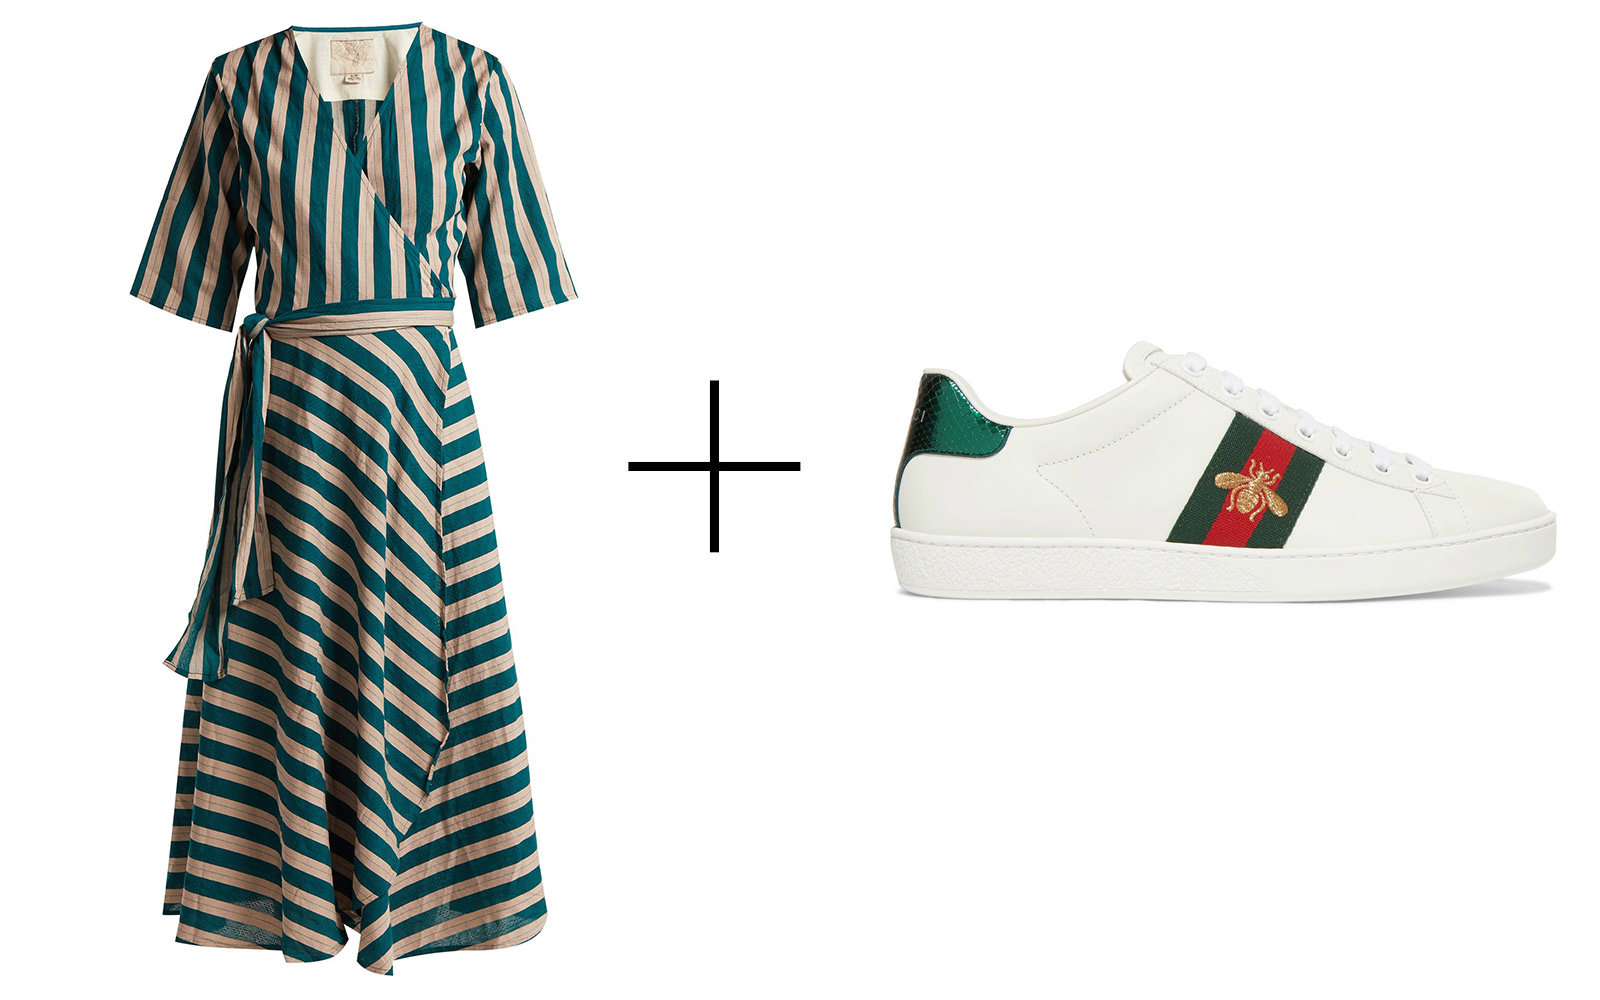 Ace&Jig 'Annalise' Striped Cotton Wrap-dress & Gucci Embroidered Leather Sneakers